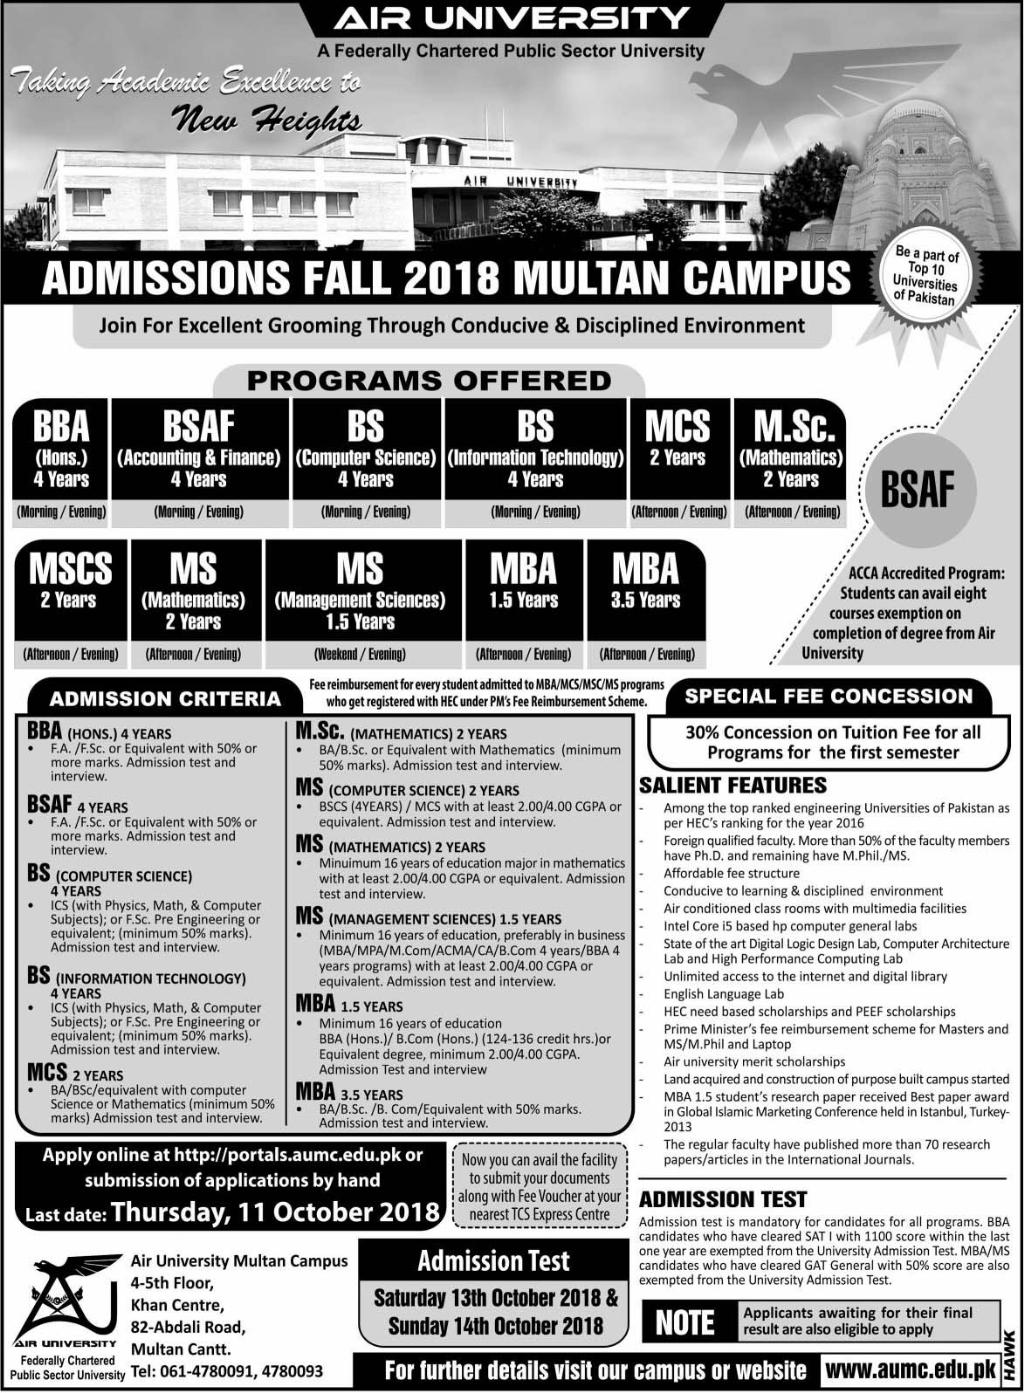 Air University Multan Campus Admission 2018 Advertisement